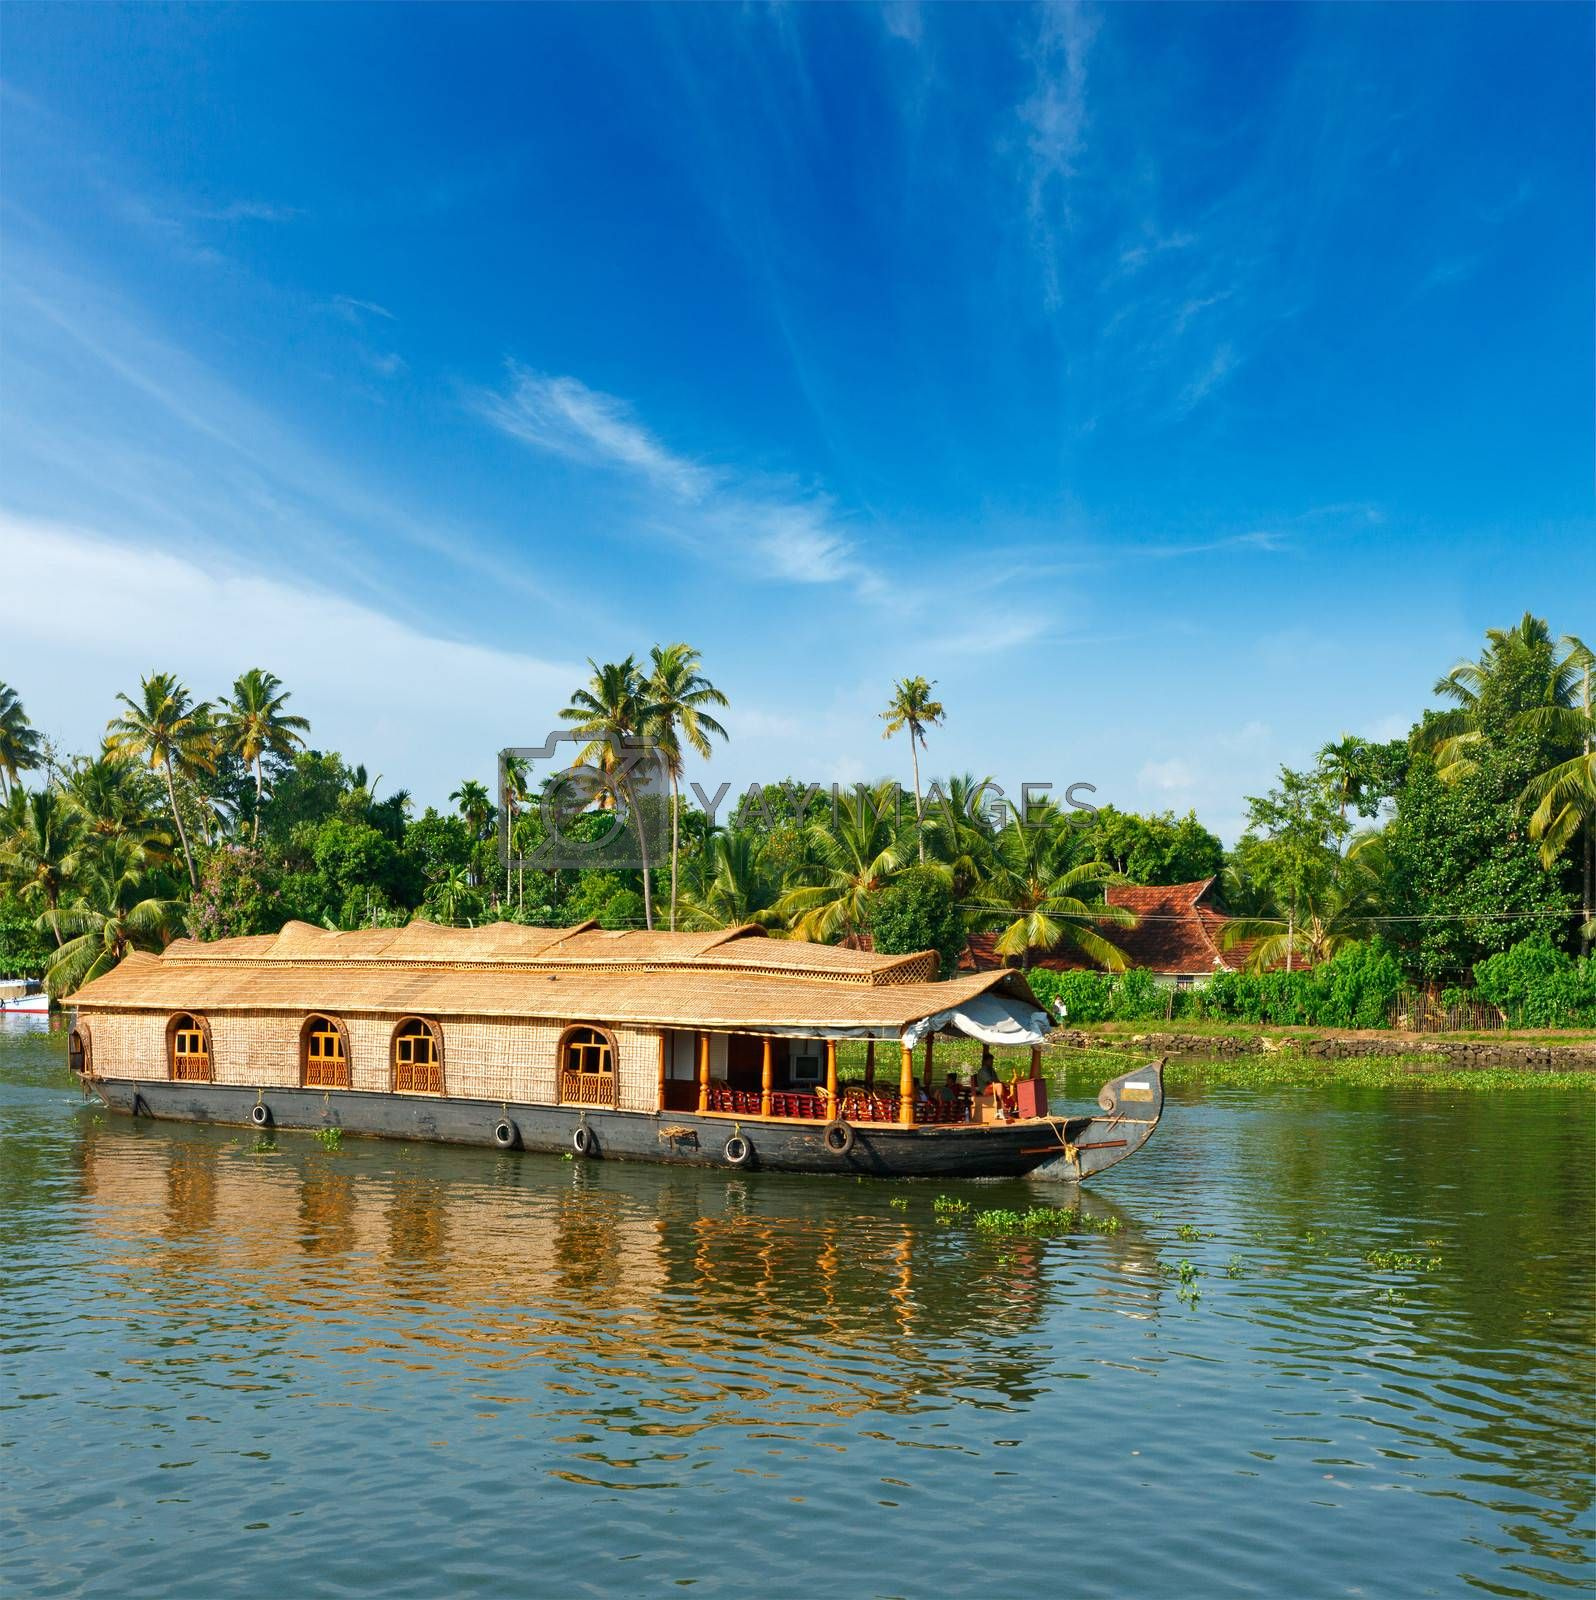 Royalty free image of Houseboat on Kerala backwaters, India by dimol